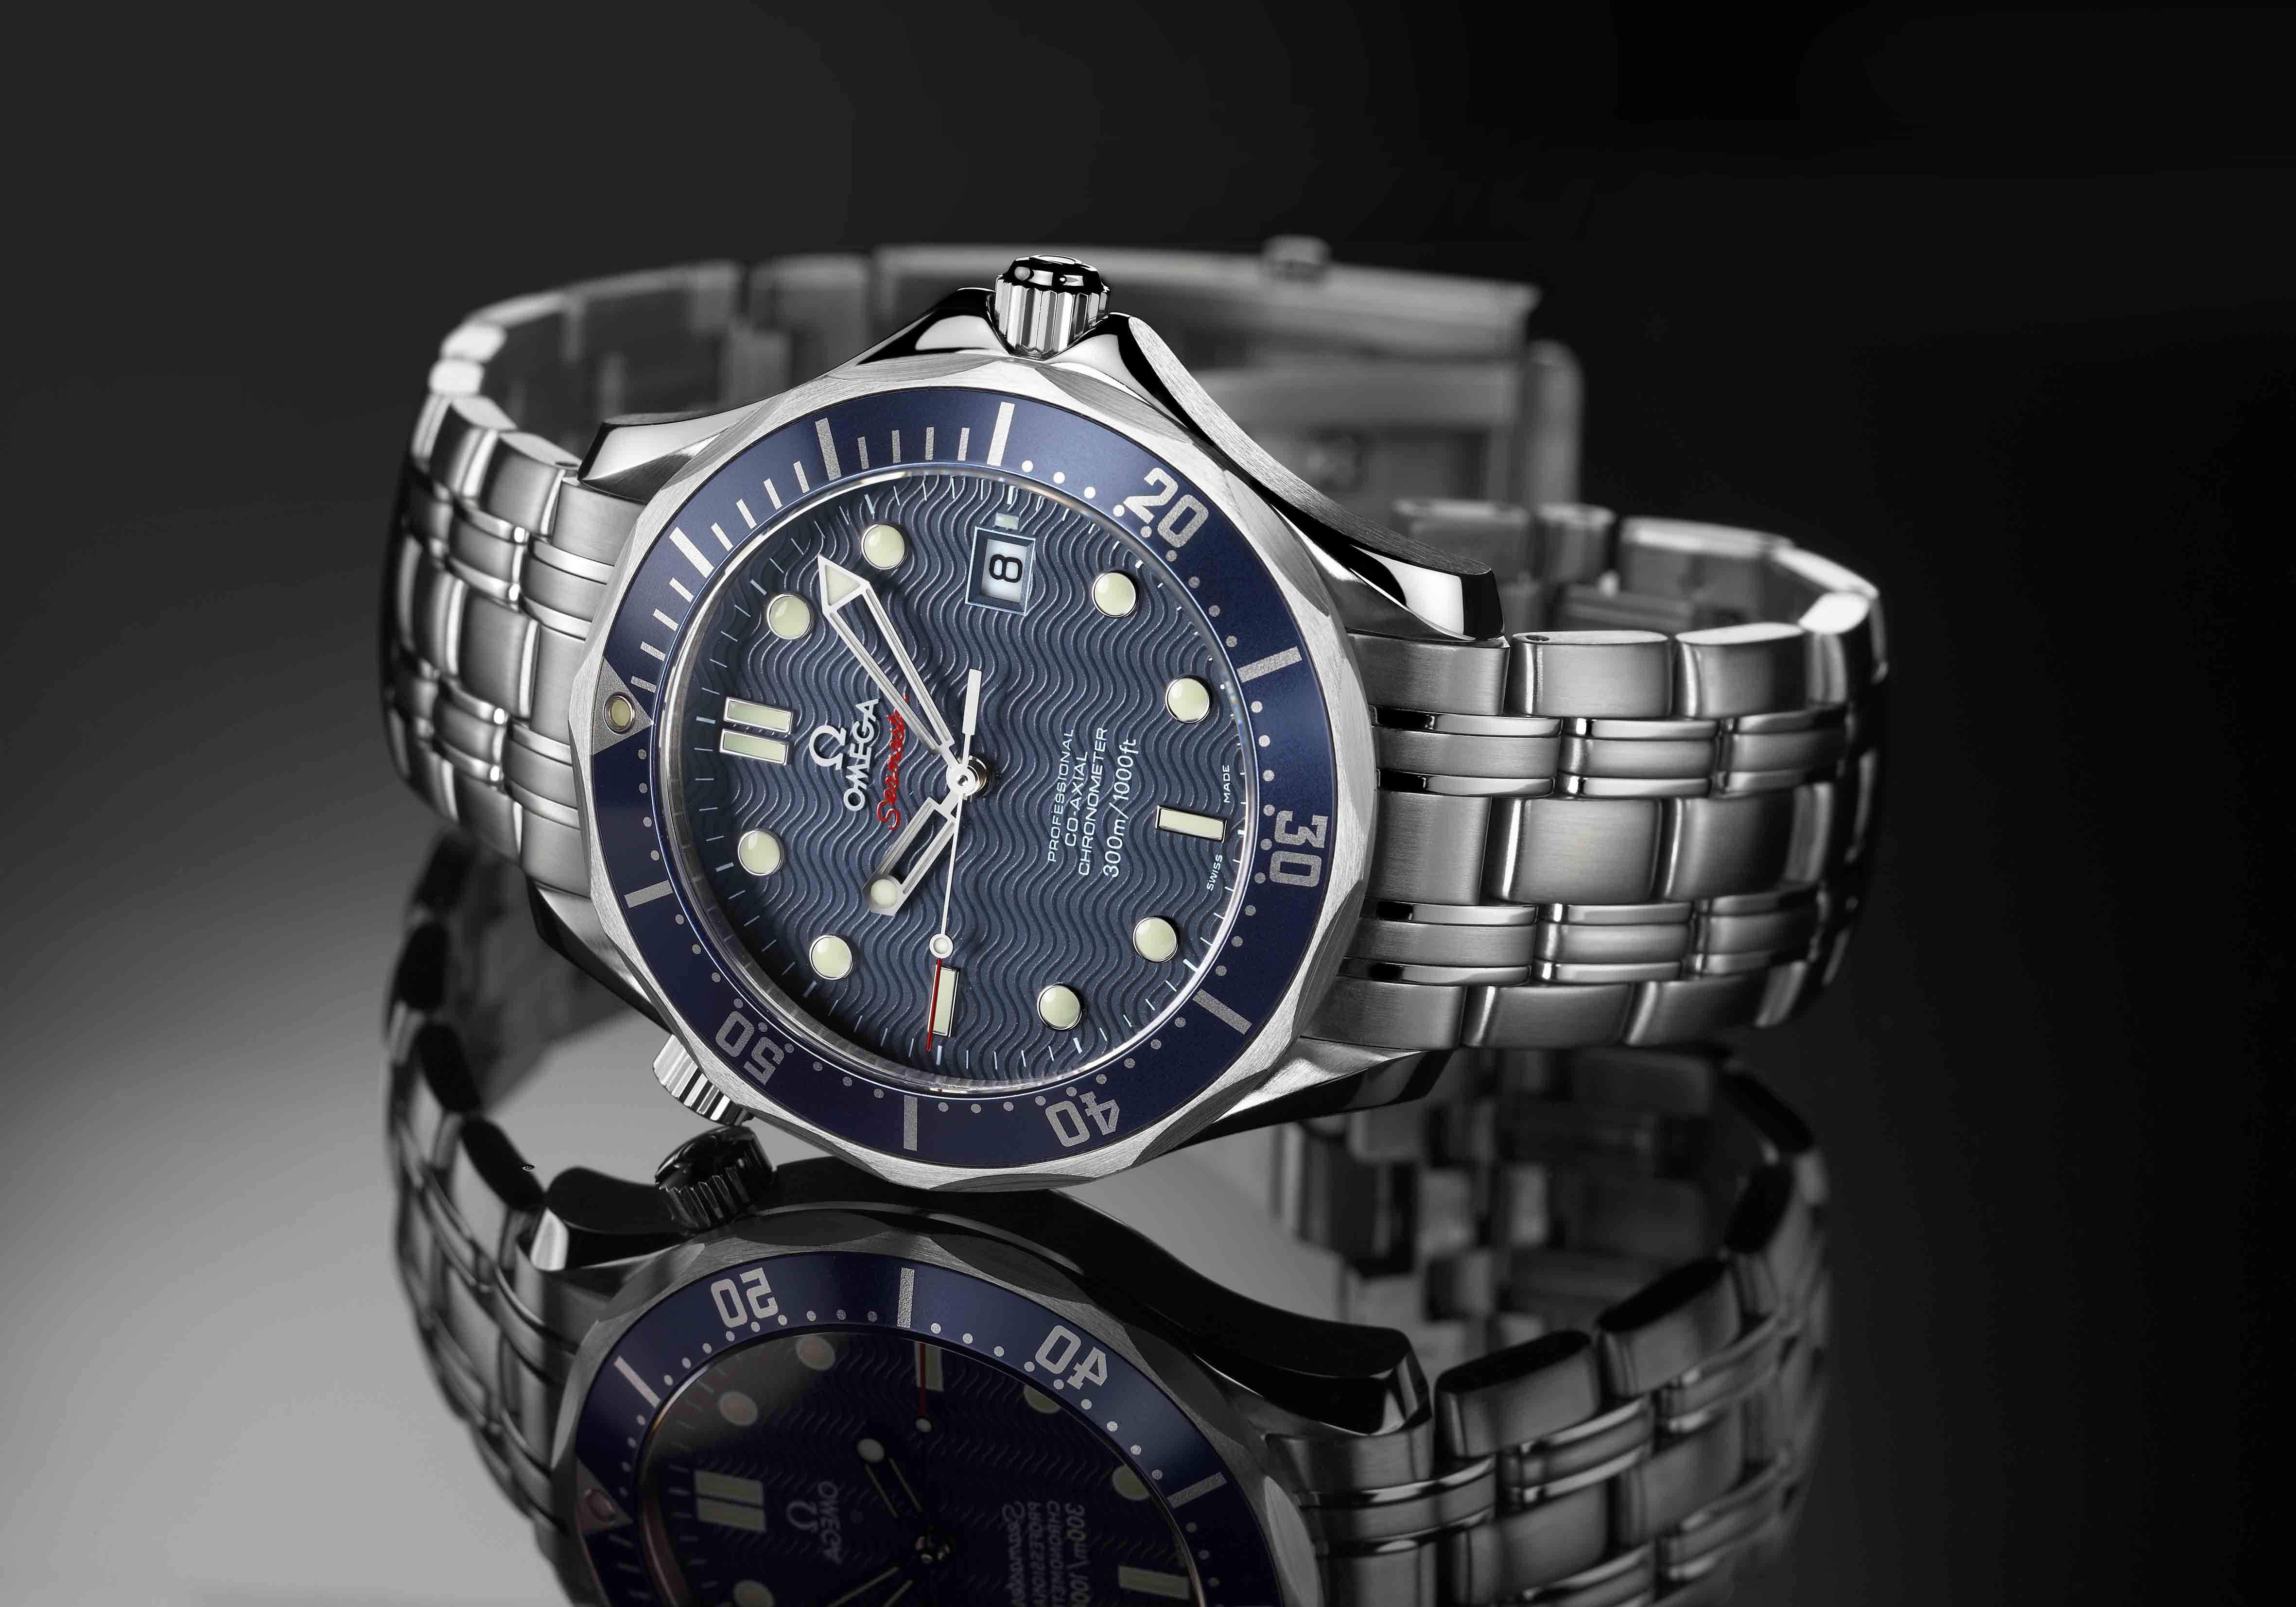 http://howtobeswell.files.wordpress.com/2012/02/omega-seamaster-222080-james-bond-watch-casino-royale-2006.jpg